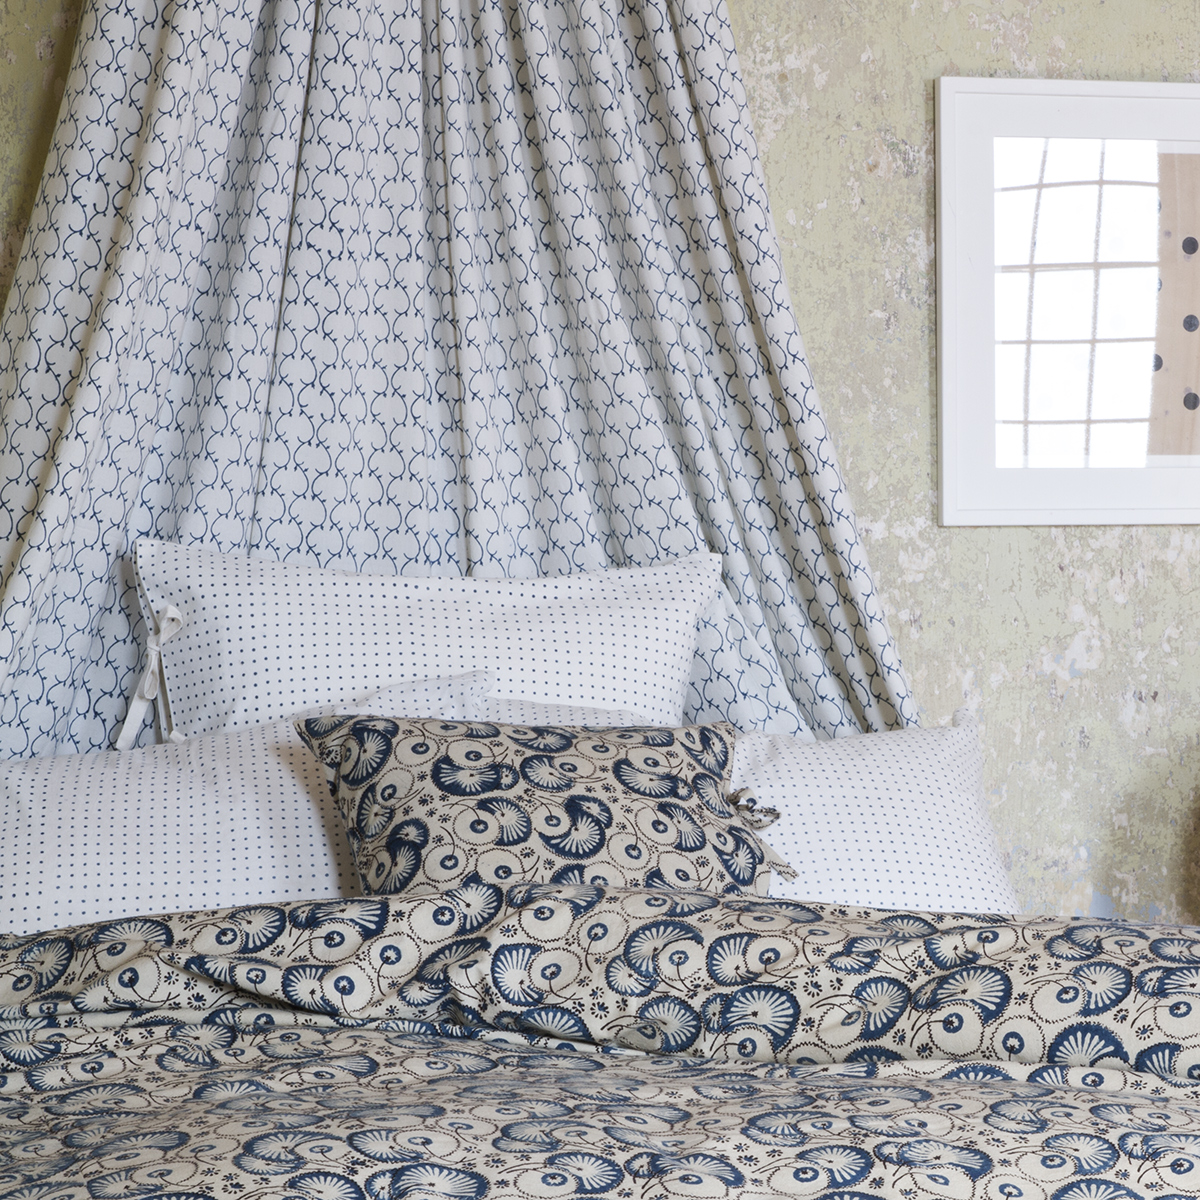 Hailey Indigo Duvet Cover Les Indiennes